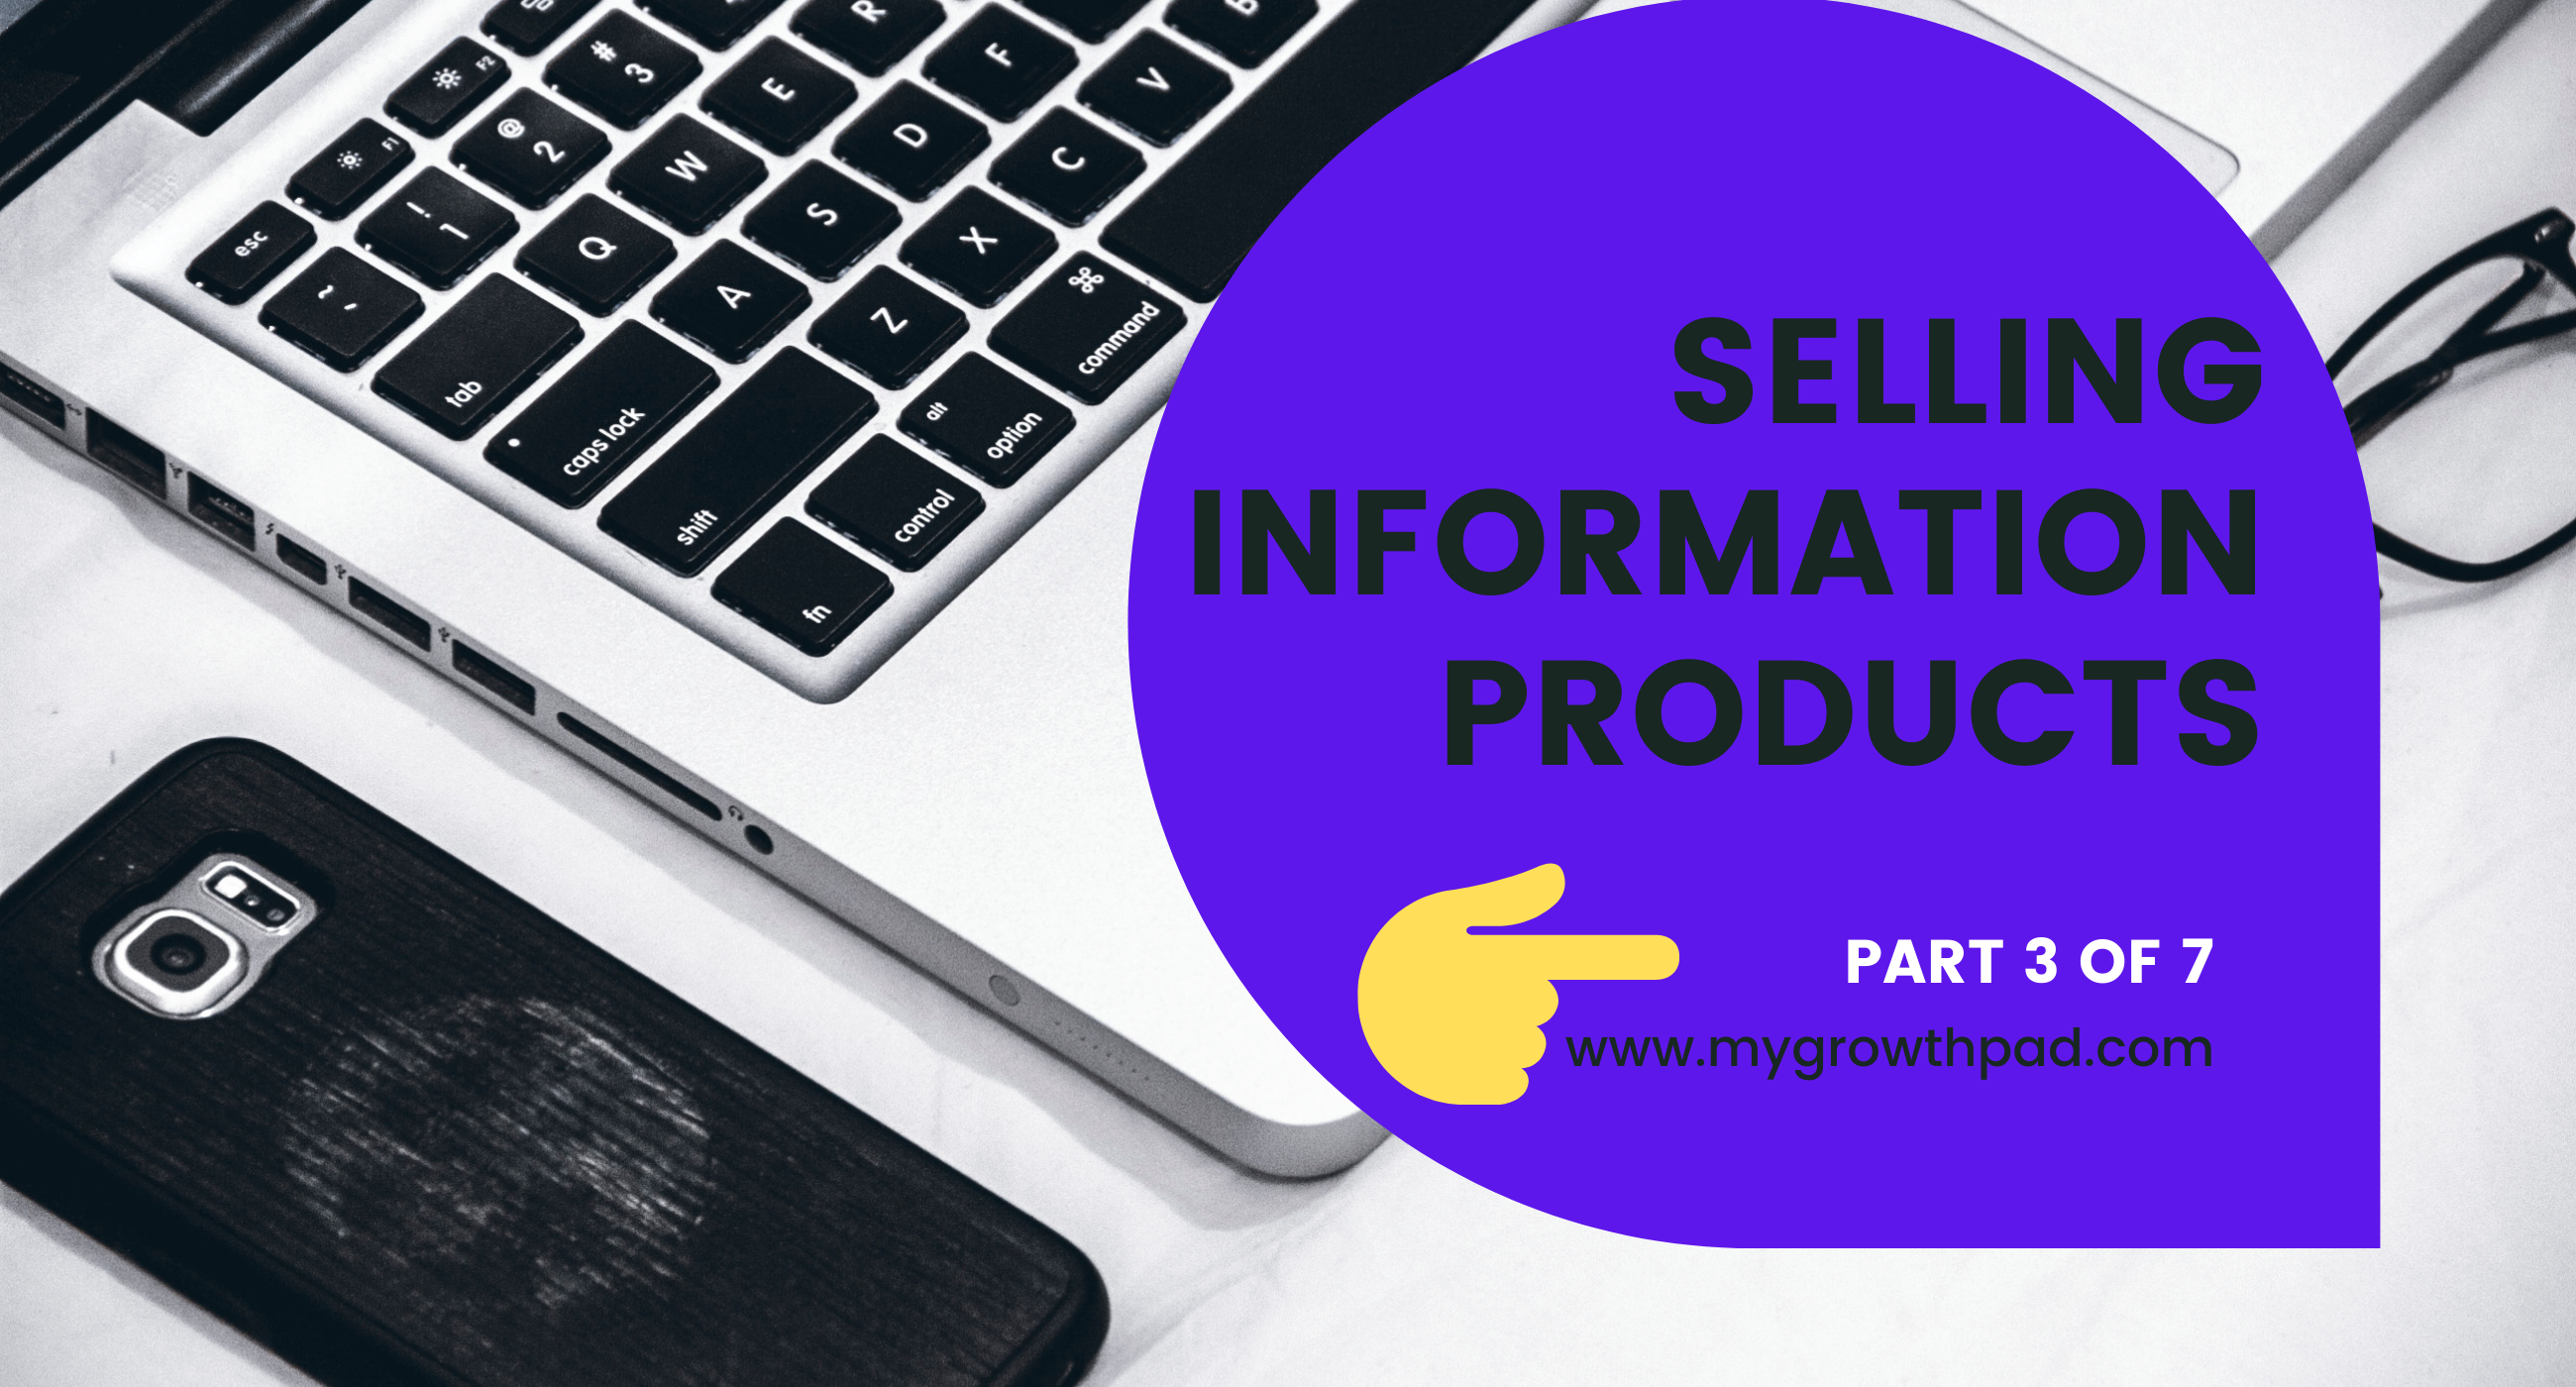 BECOMING THE AUTHORITY: How To Make 6-Figures Selling Information Products Online (PART 3)